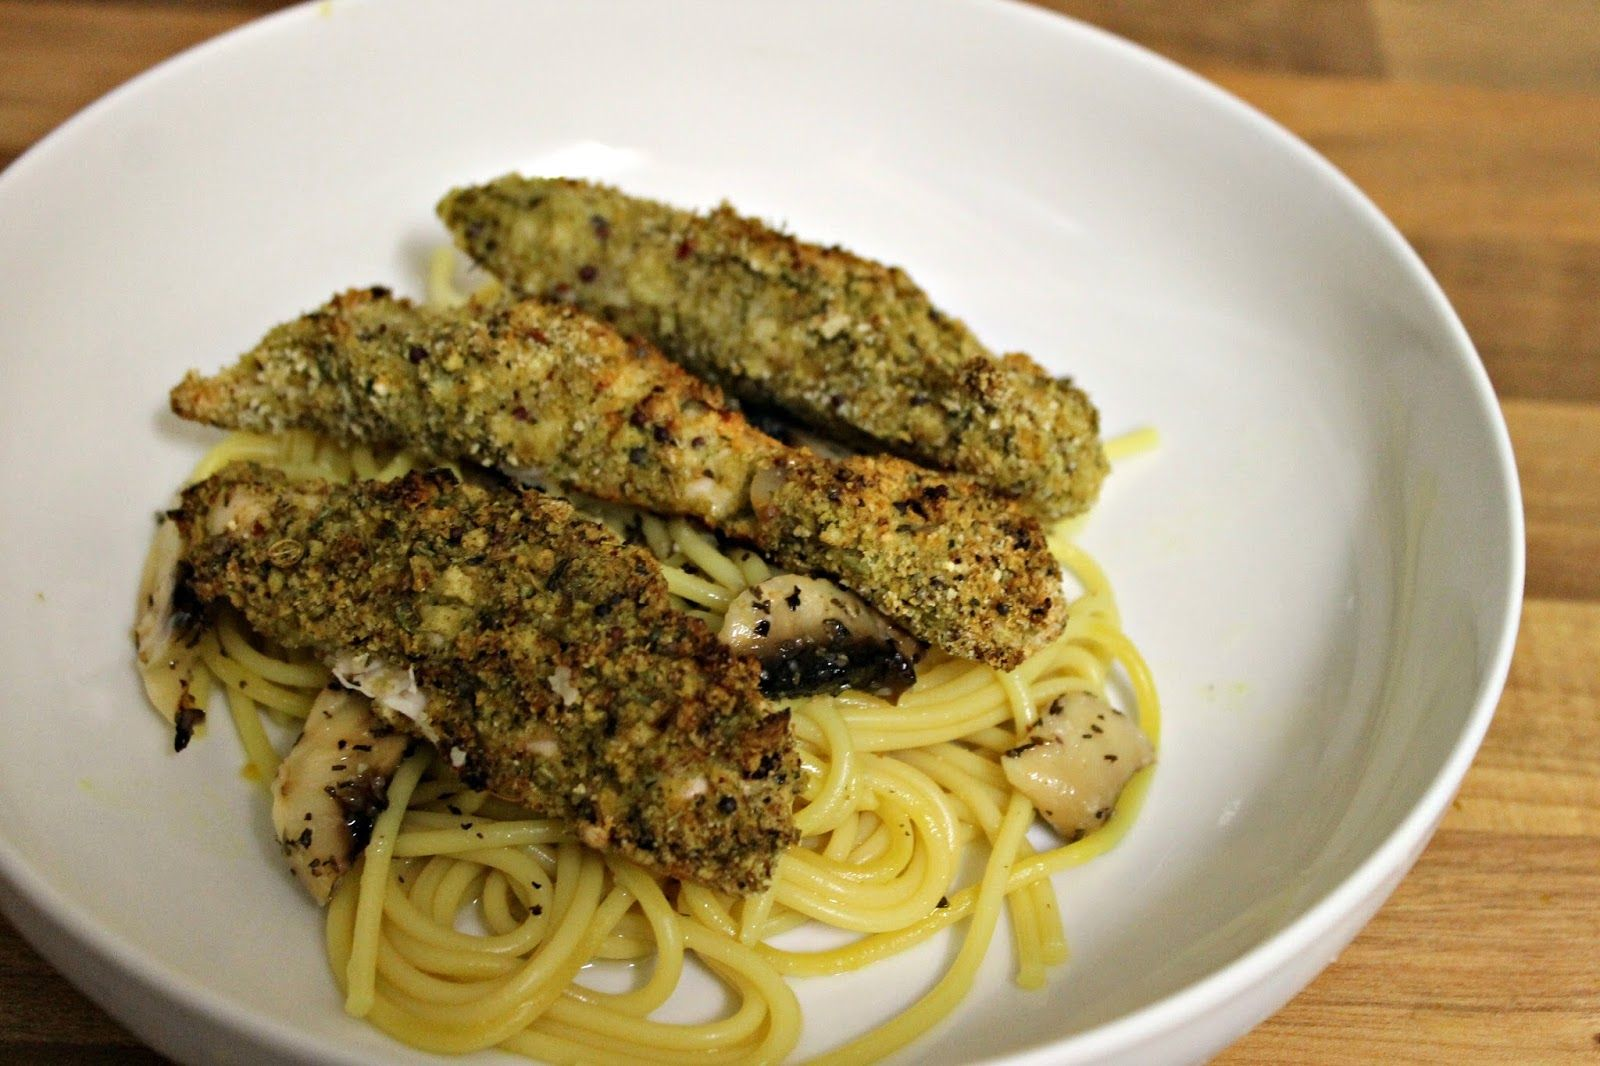 Cocktails in Teacups: #534 Lemon & Mustard Crumb Chicken with Spaghetti Recipe